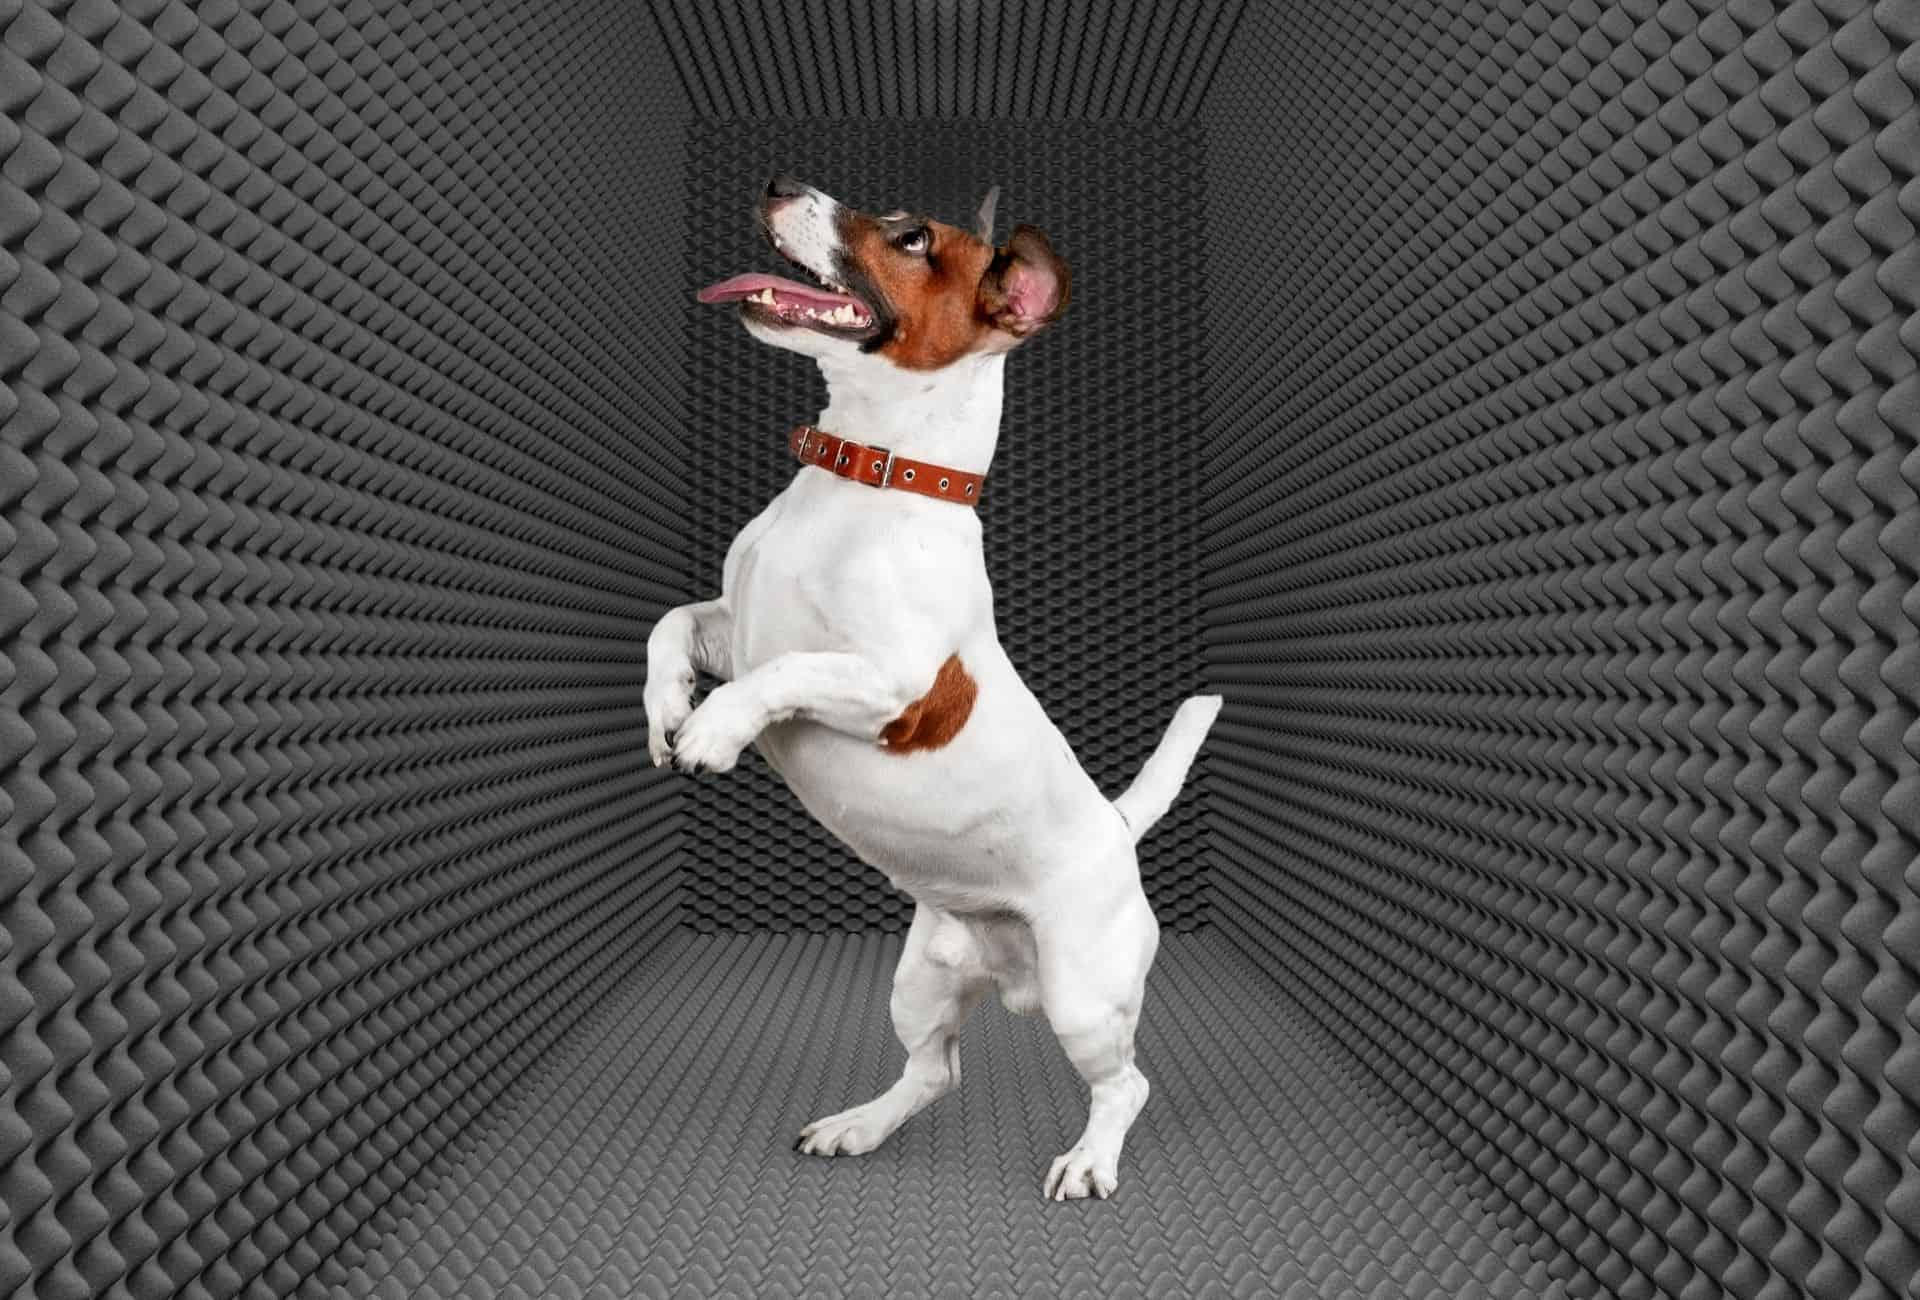 Jack Russell Terrier in a roo with soundproof walls all around.